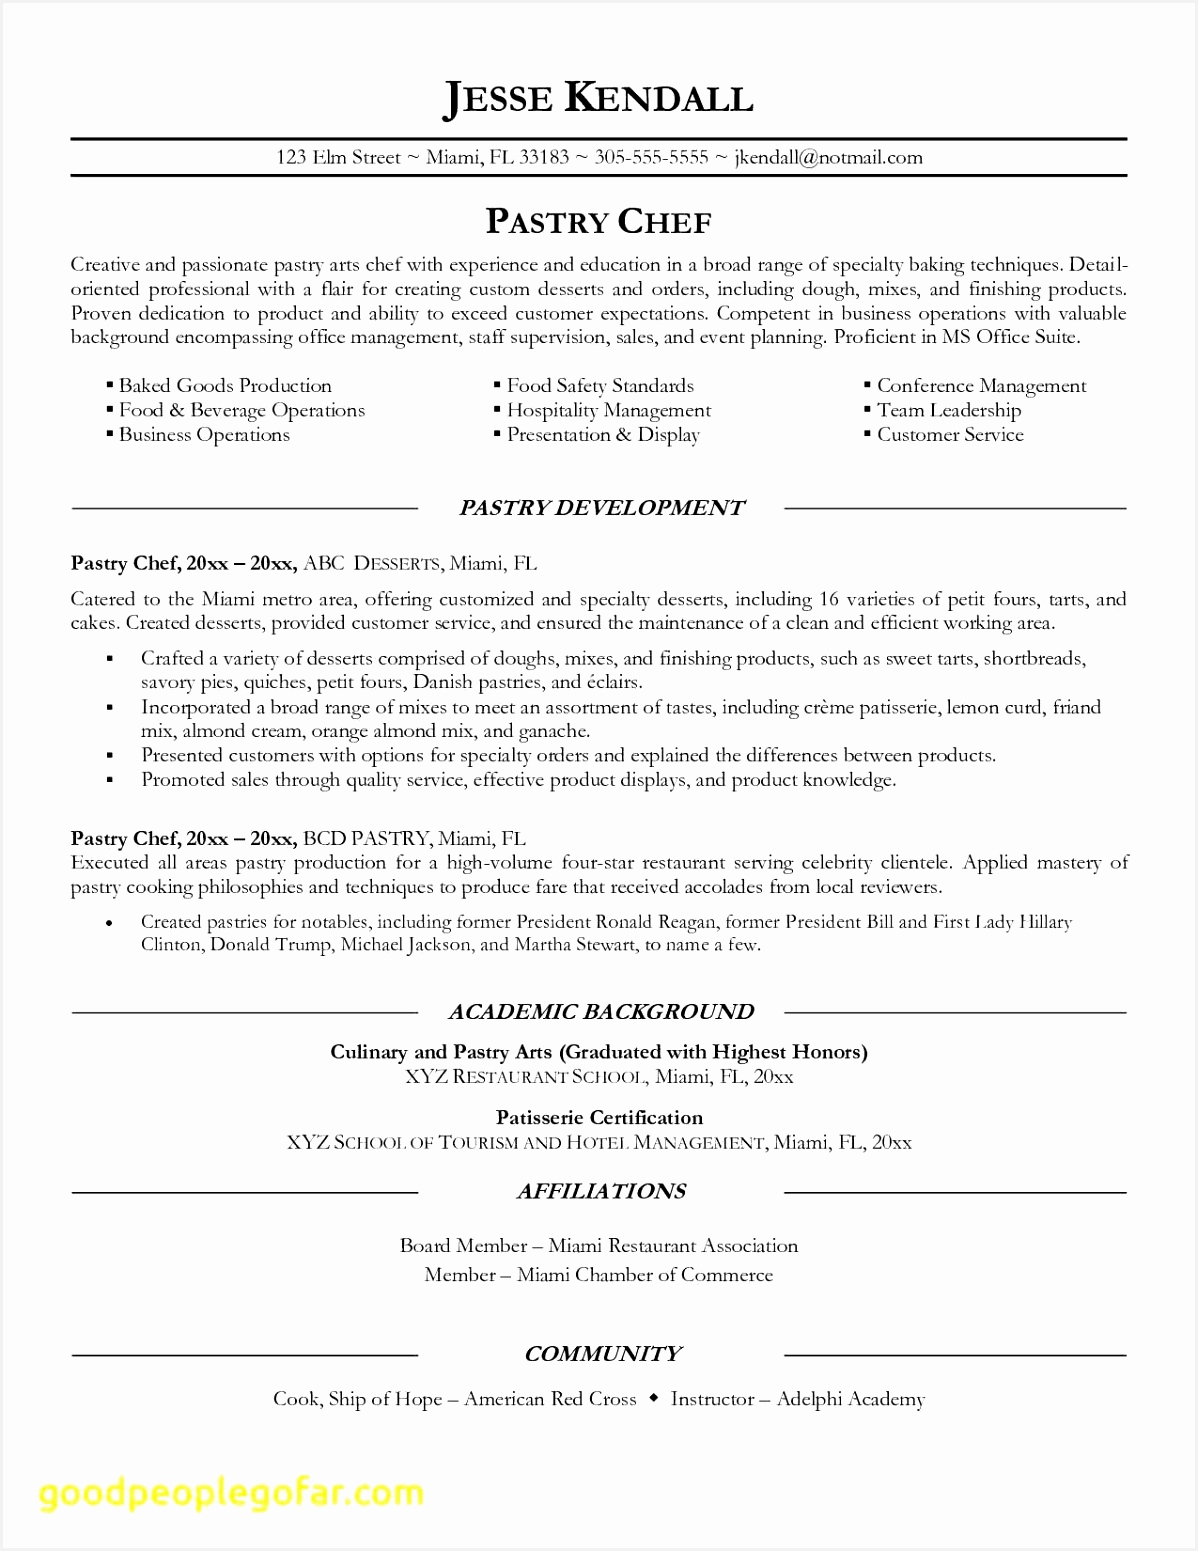 Chef Resume Objective Examples Pastry Chef Resume Awesome Resume for Dummies Best Bsw Resume 0d 15511198fpIRw